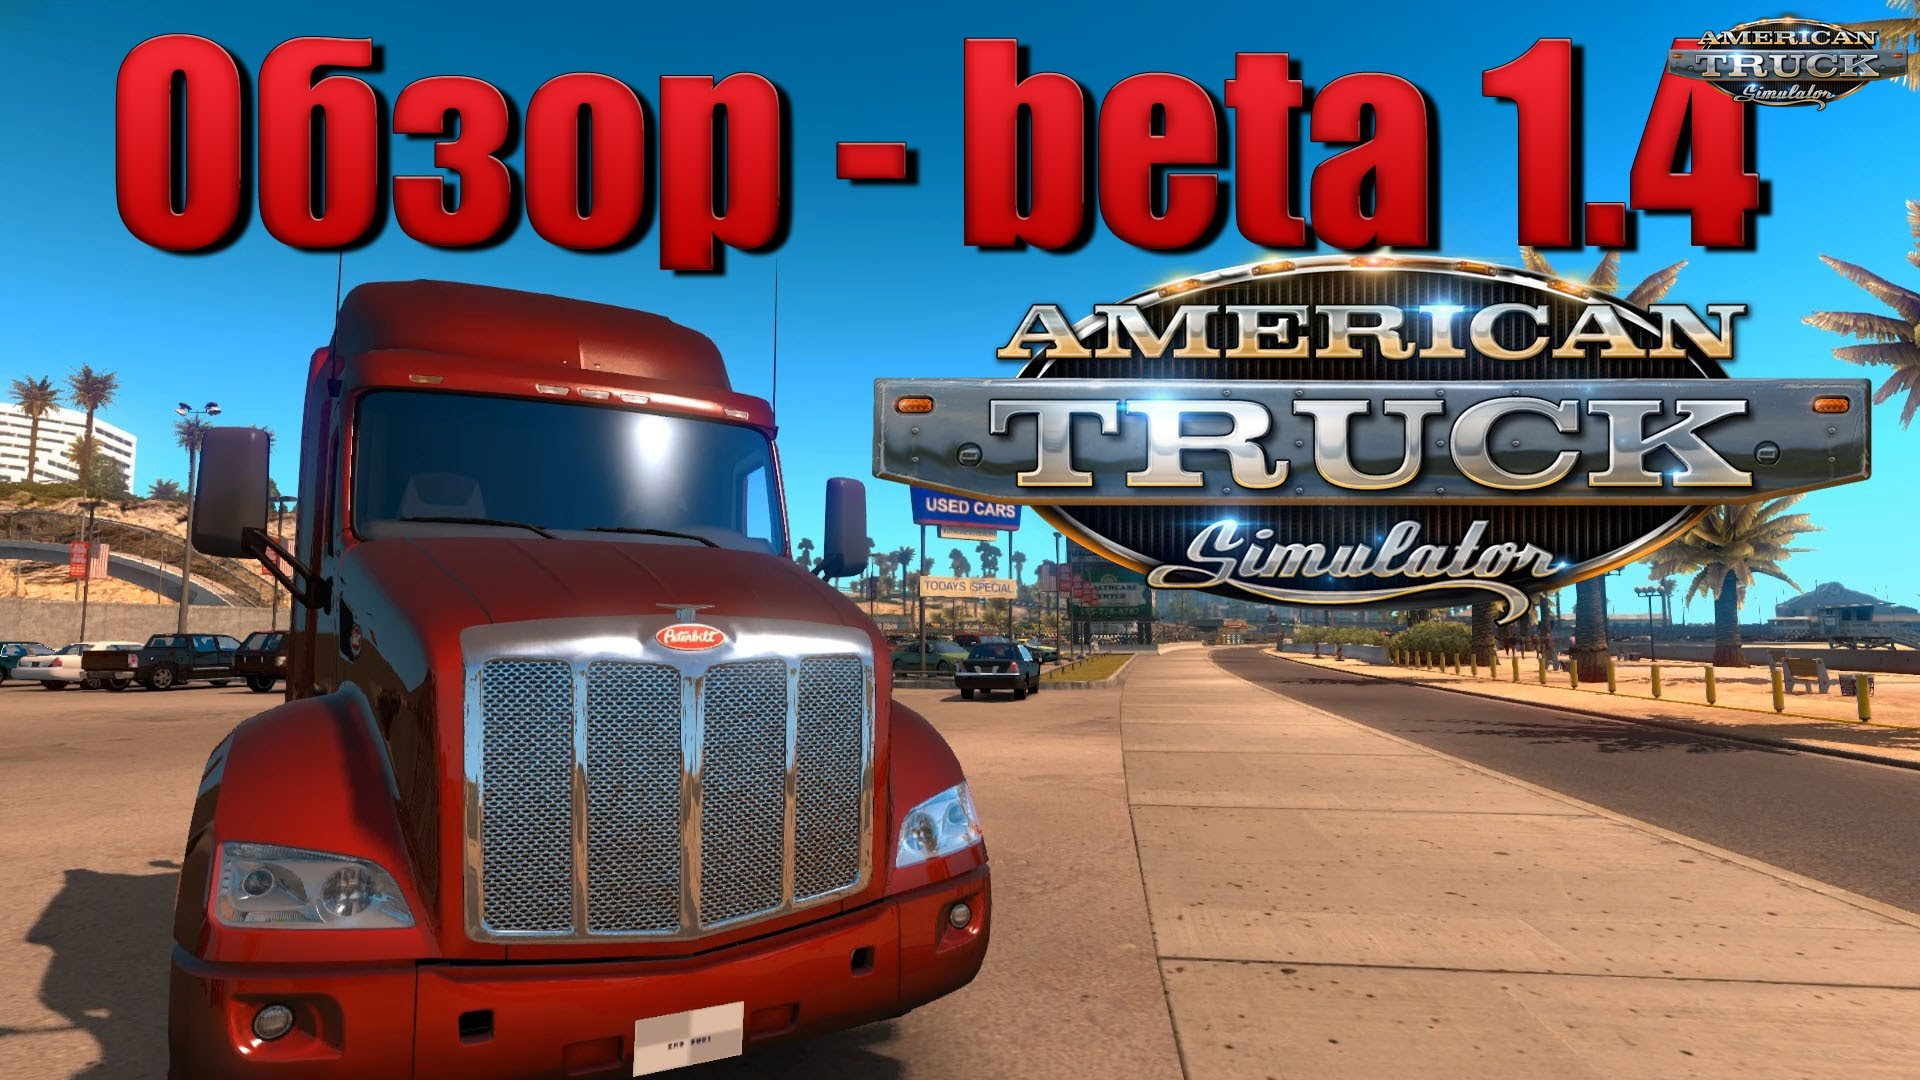 Official update 1.4 for American Truck Simulator was released via Steam